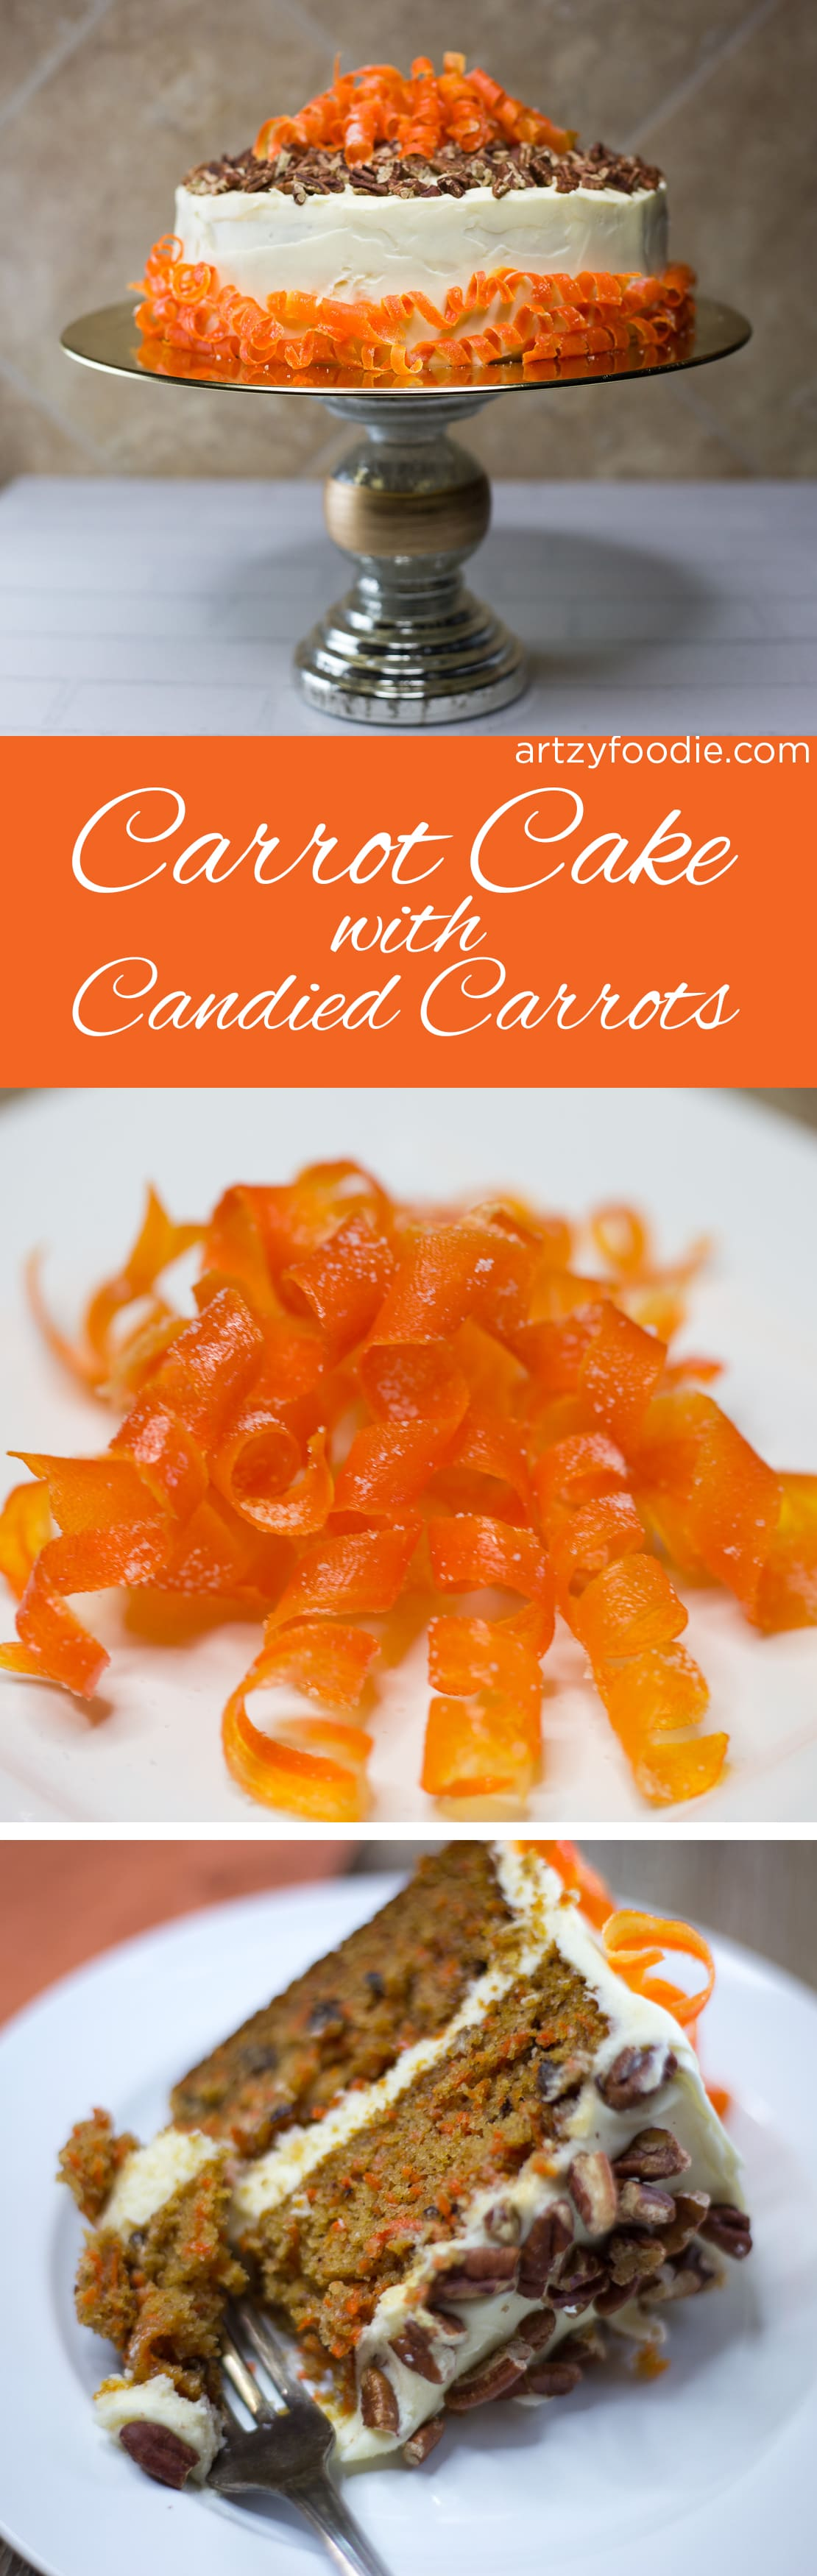 Carrot cake with candied carrots will be your new favorite dessert! |artzyfoodie.com|